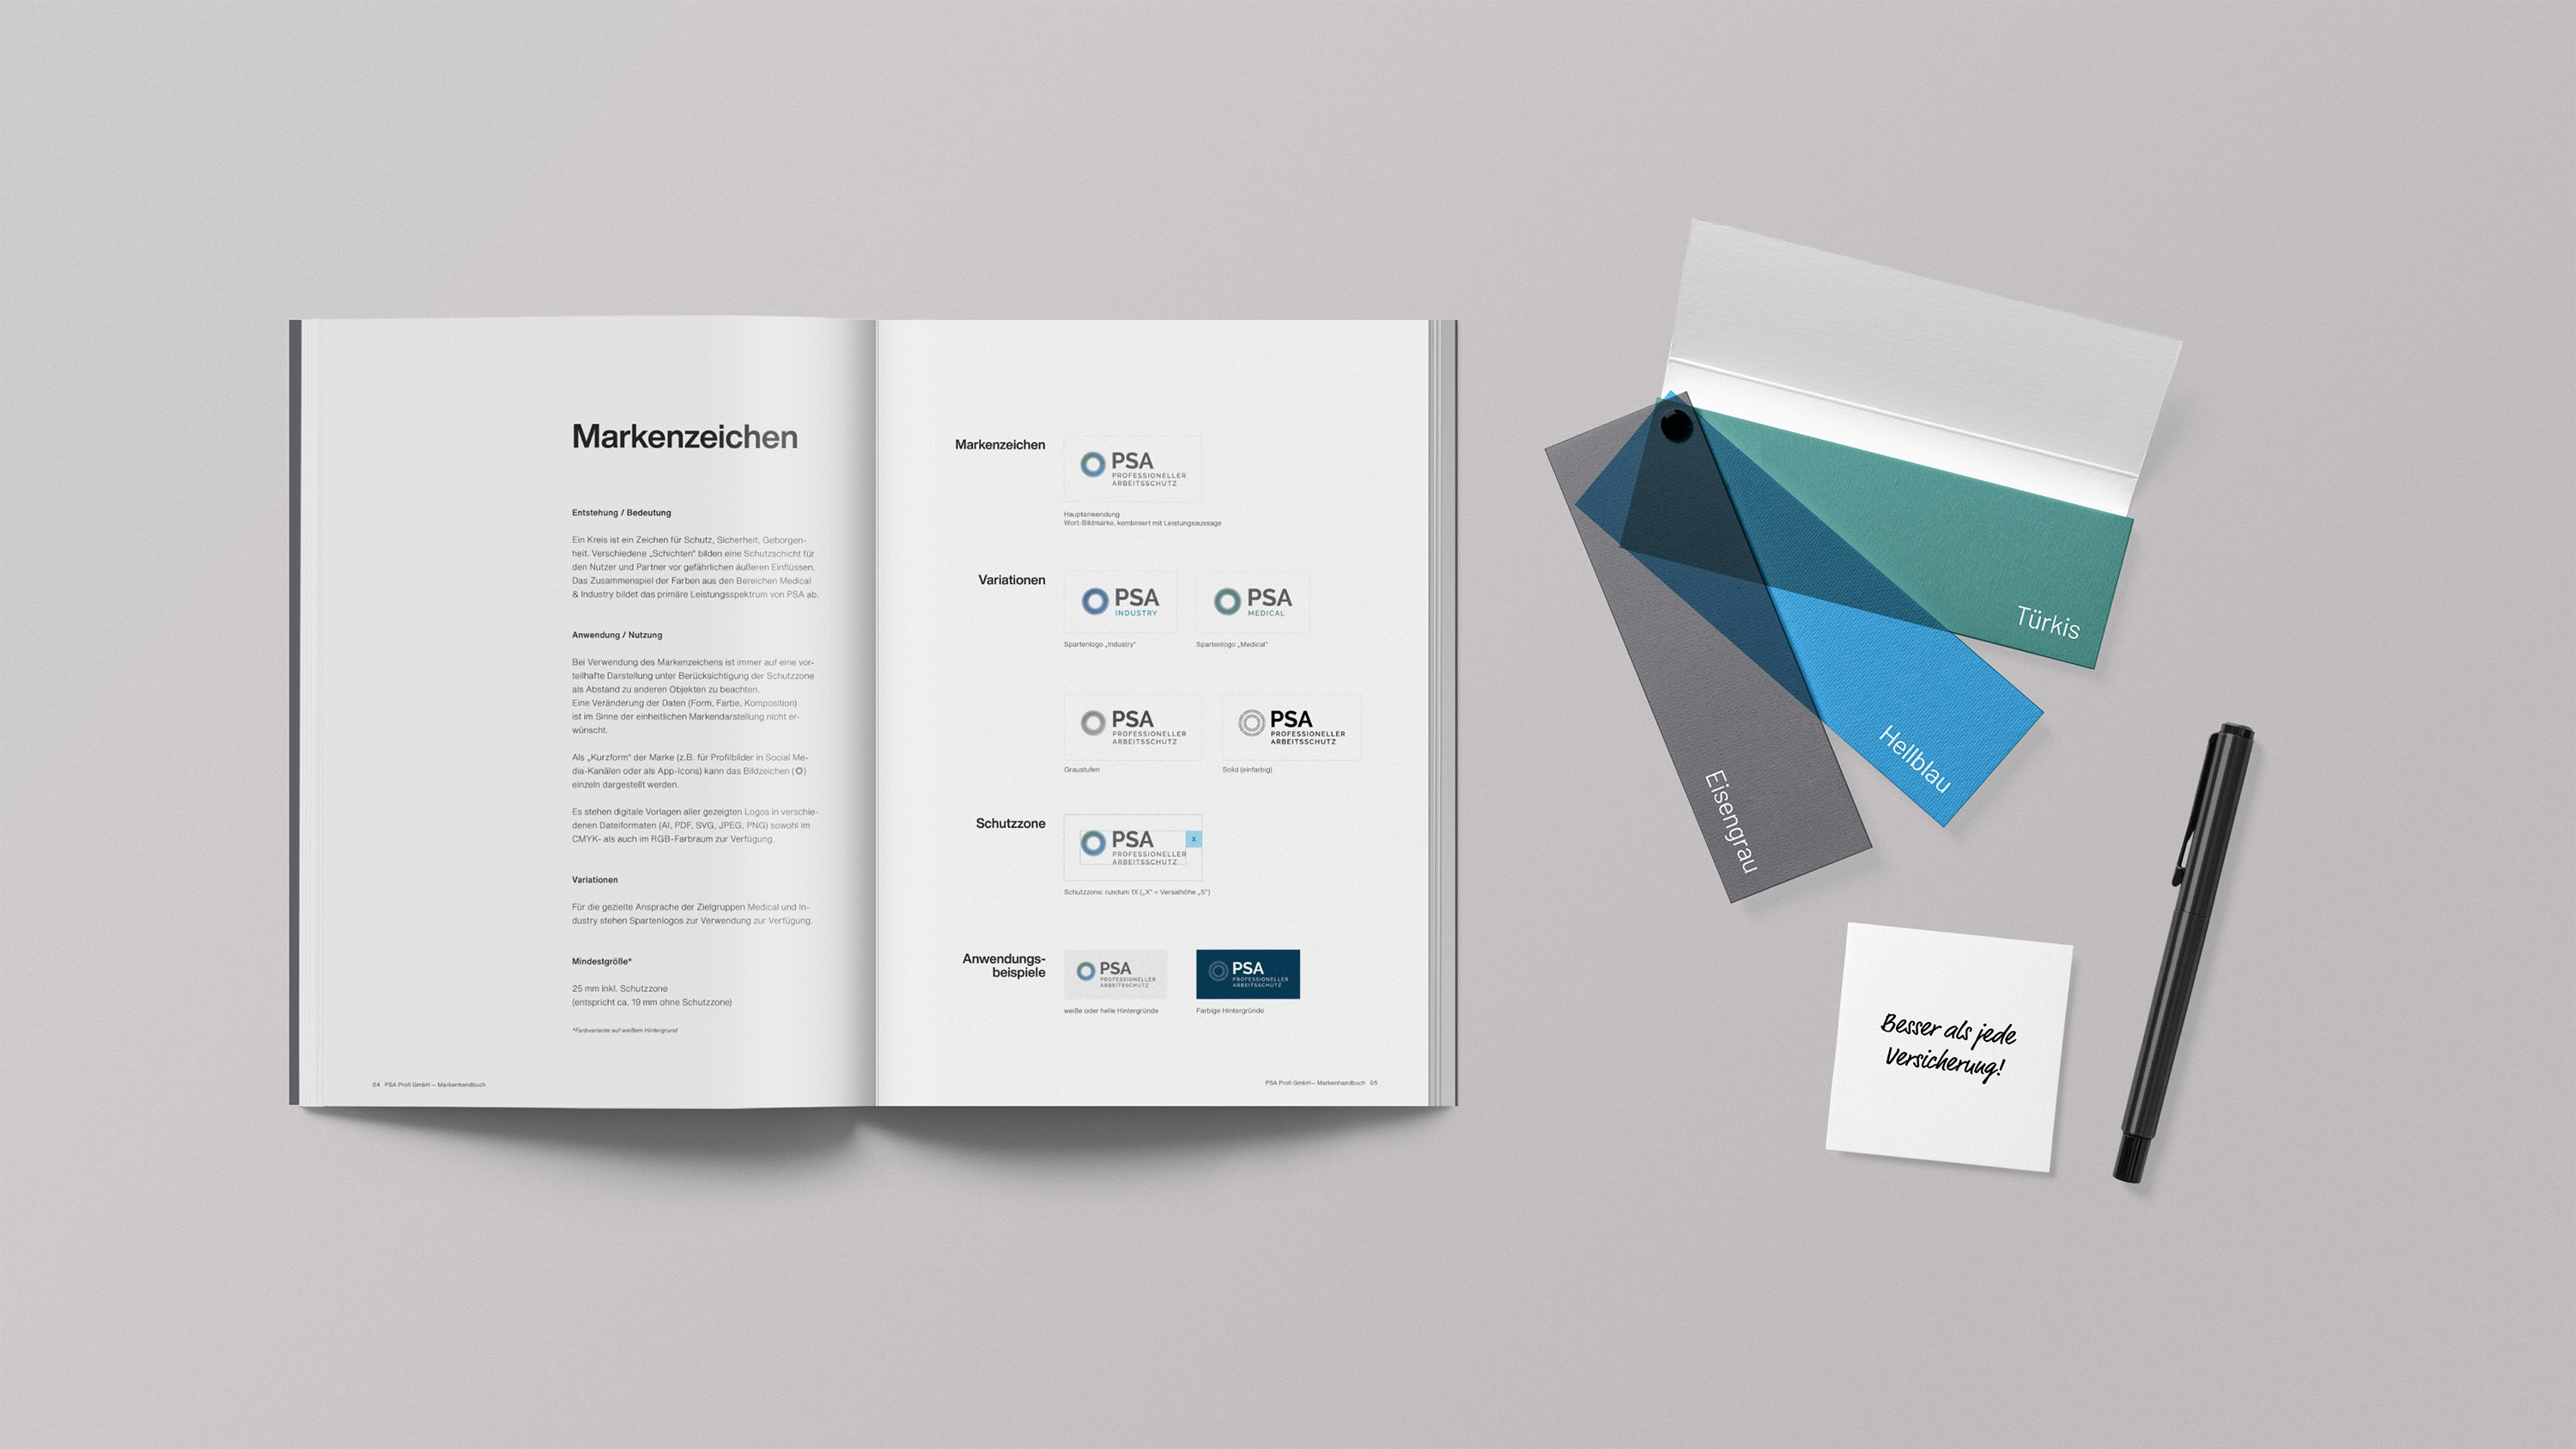 Mockup PRA Profi Corporate Design Manual